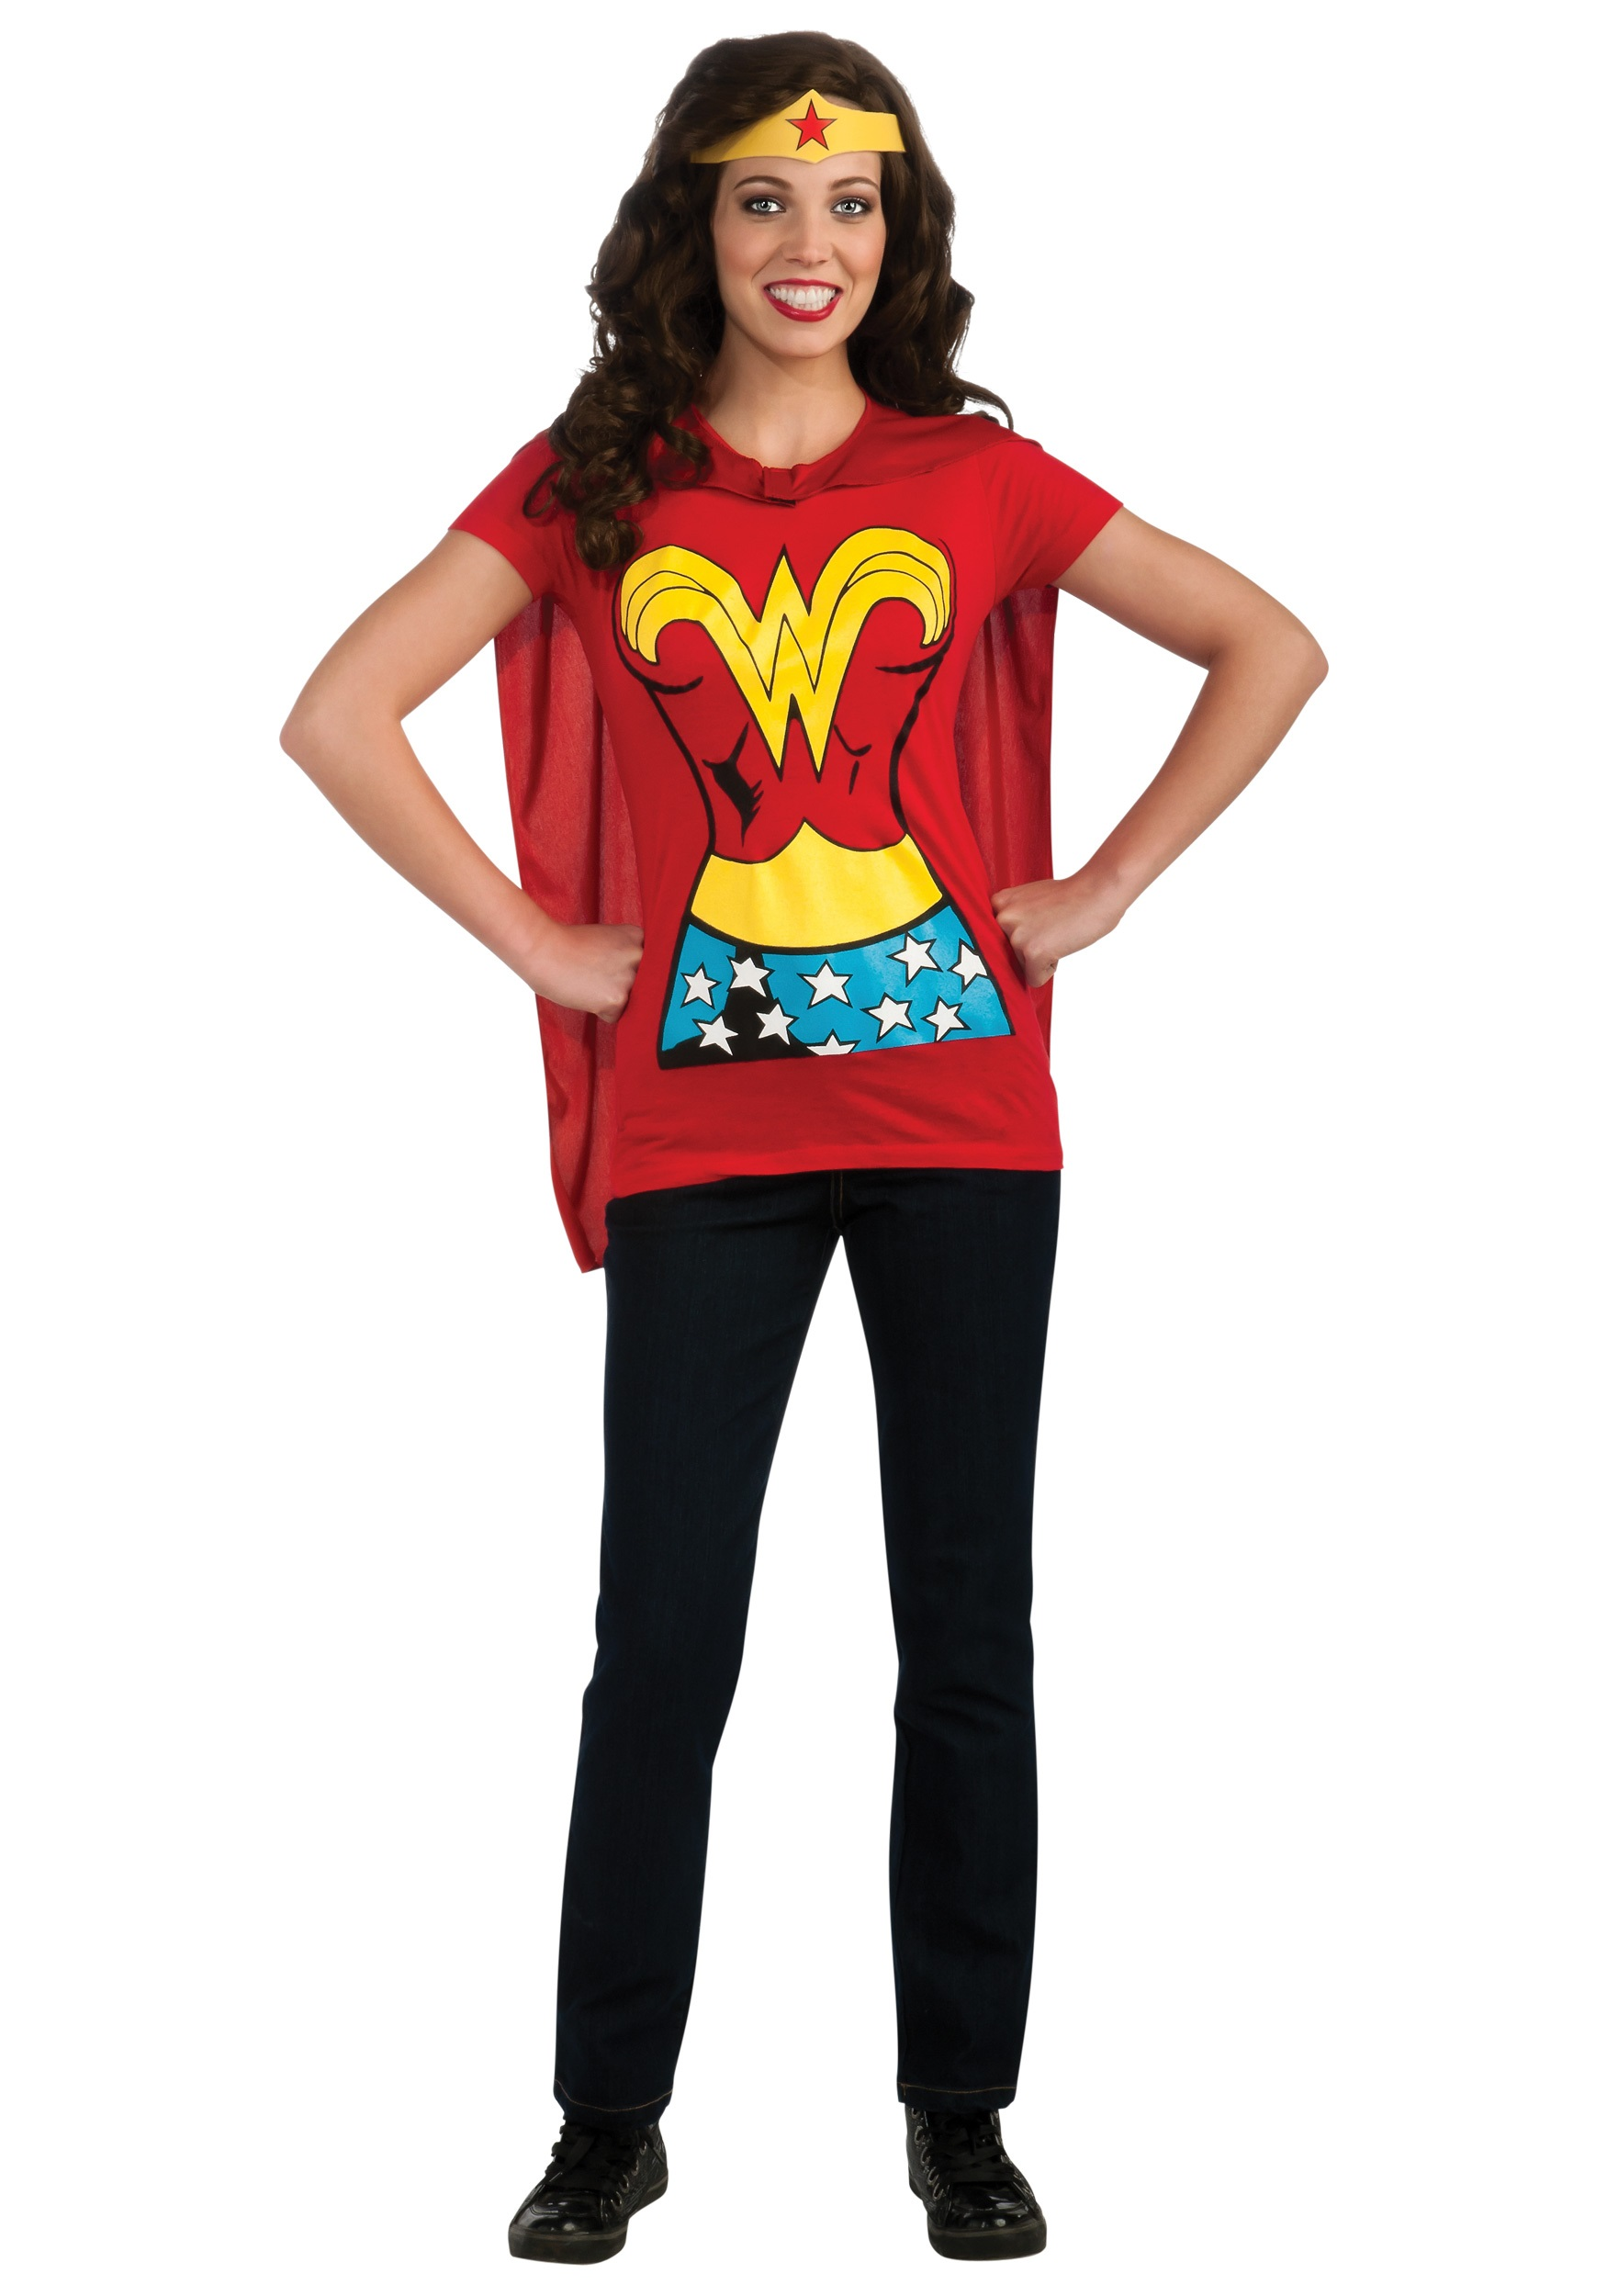 Rubies DC Comics Wonder Woman T-Shirt With Cape And Headband, Red, Large Costume $ 17 99 Prime. out of 5 stars DC Comics. Women's Dc Comics Wonder Woman Glitter Juniors V-Neck Tee. from $ 19 99 Prime. out of 5 stars Bioworld. Wonder Woman Gold Foil Striped Sleeves Red Juniors T-Shirt Tee.